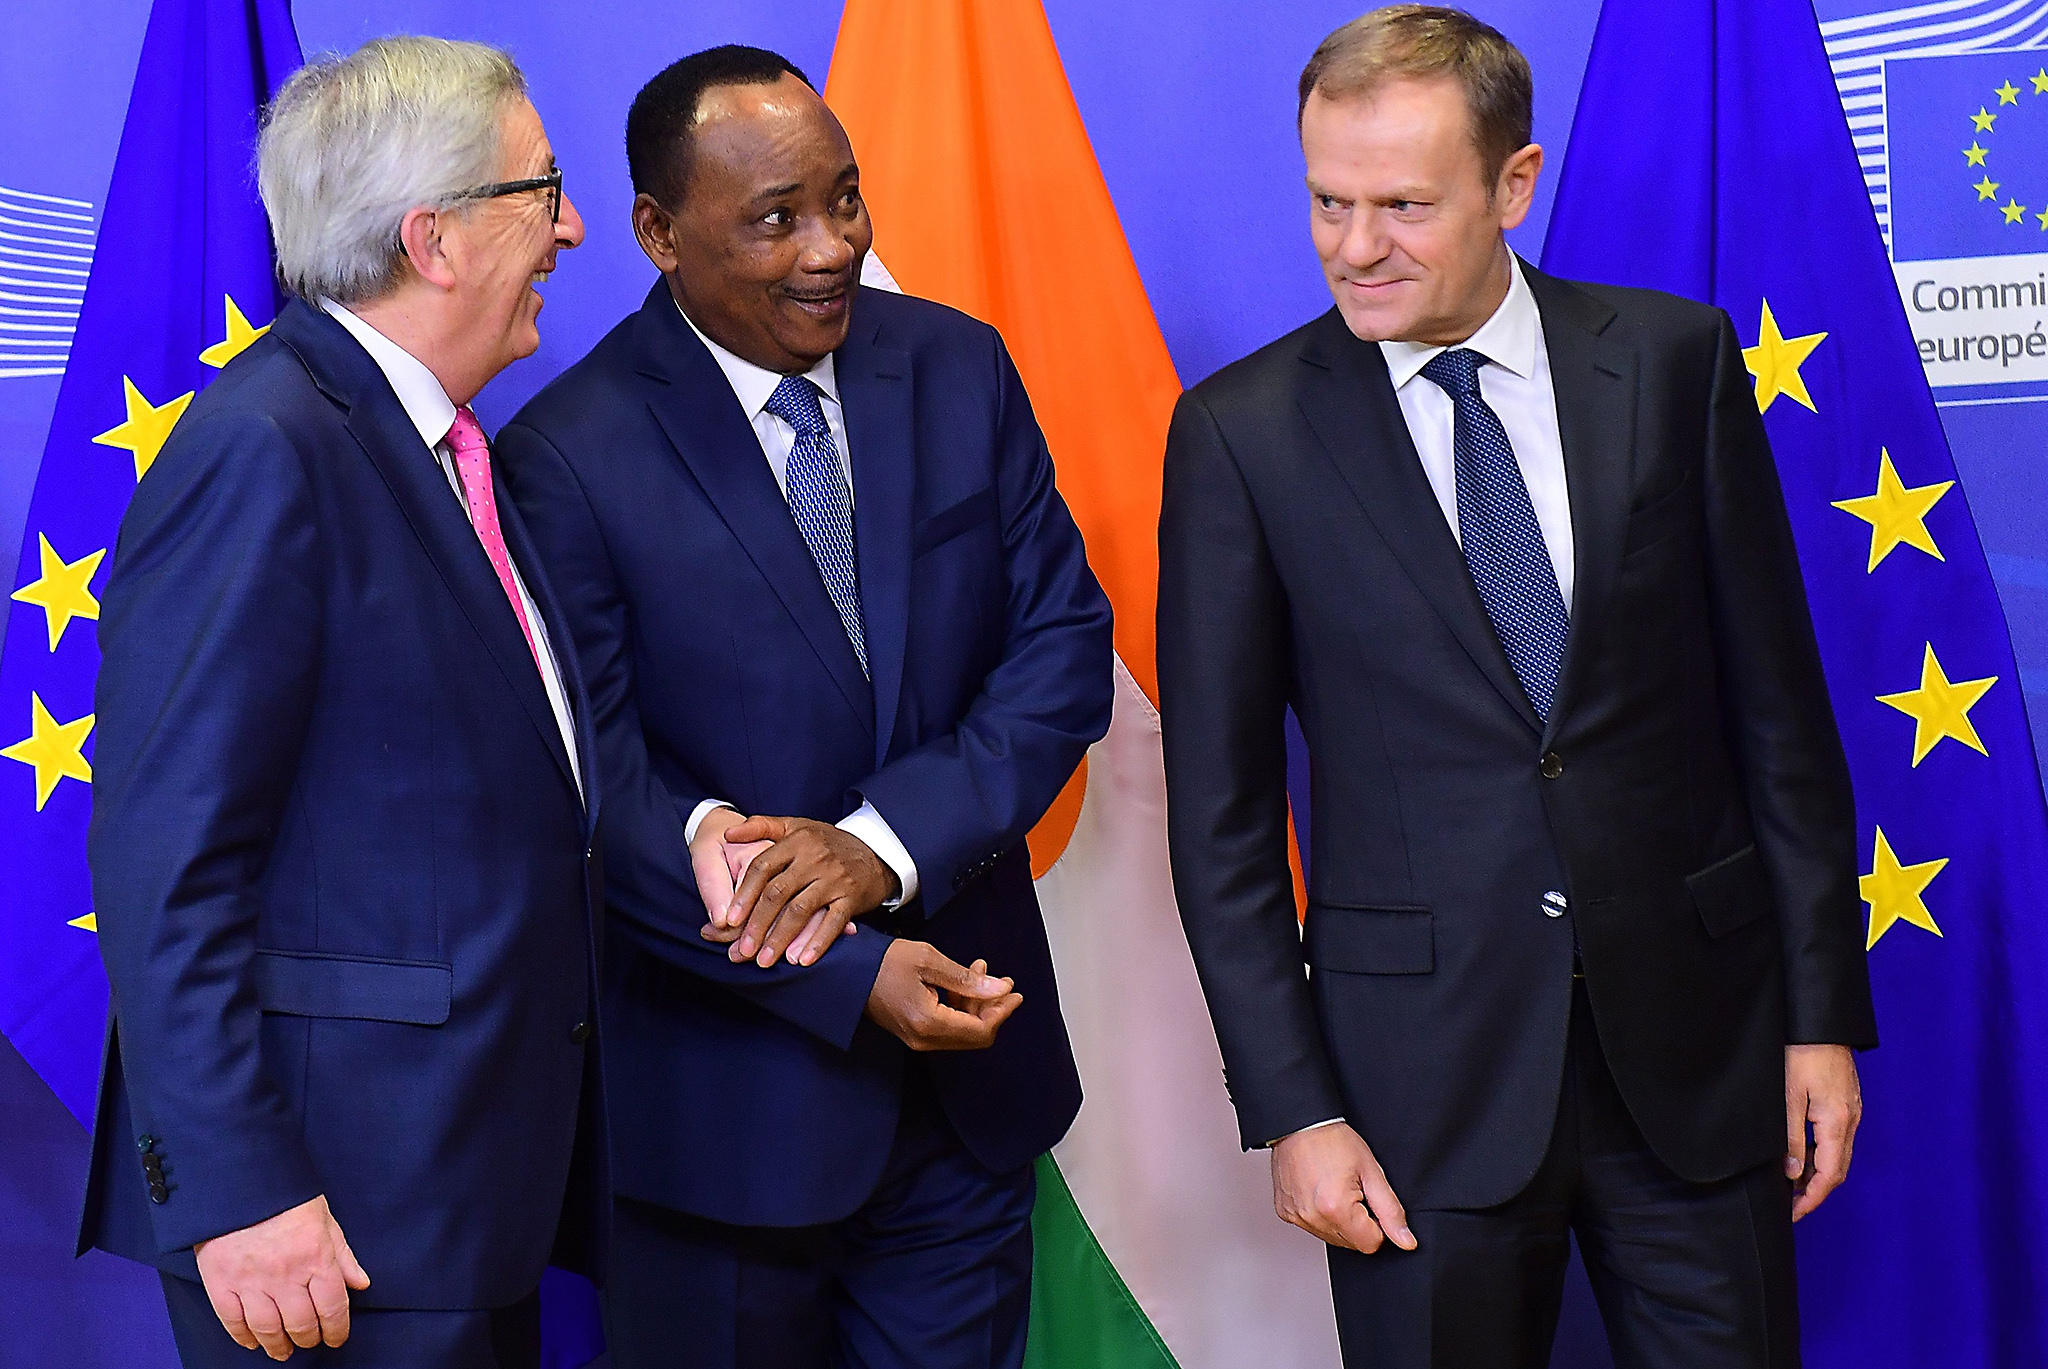 Niger's President Mahamadou Issoufou (C)  is welcomed by European Commission President Jean-Claude Juncker (L) and European Council President Donald Tusk at the European Commission in Brussels, December 15, 2016.   / AFP PHOTO / EMMANUEL DUNANDEMMANUEL DUNAND/AFP/Getty Images